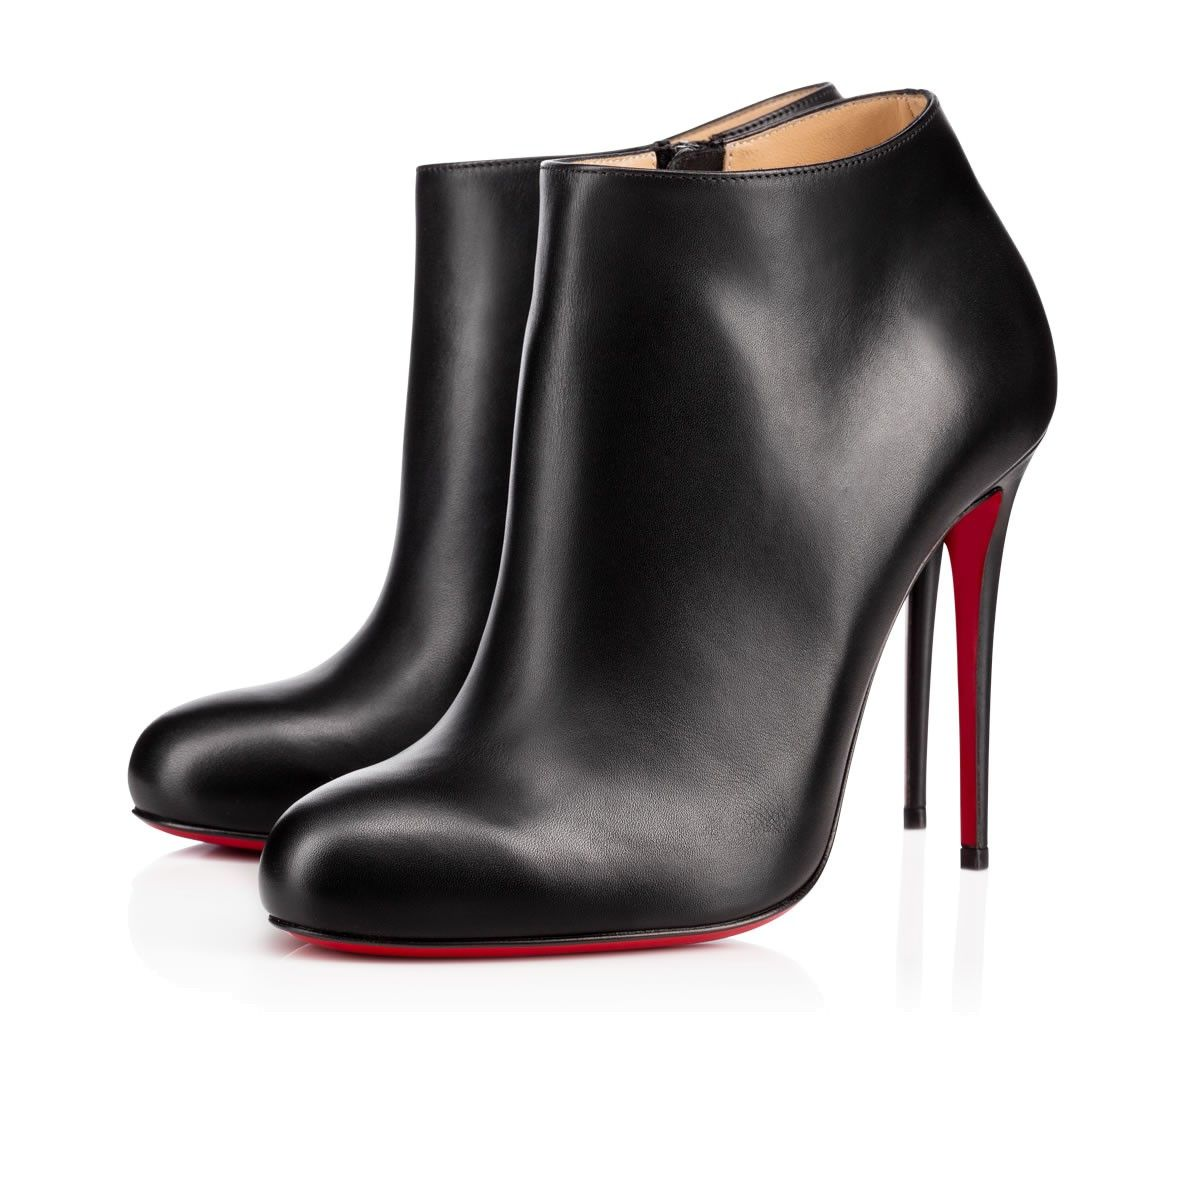 louboutin chaussure femme